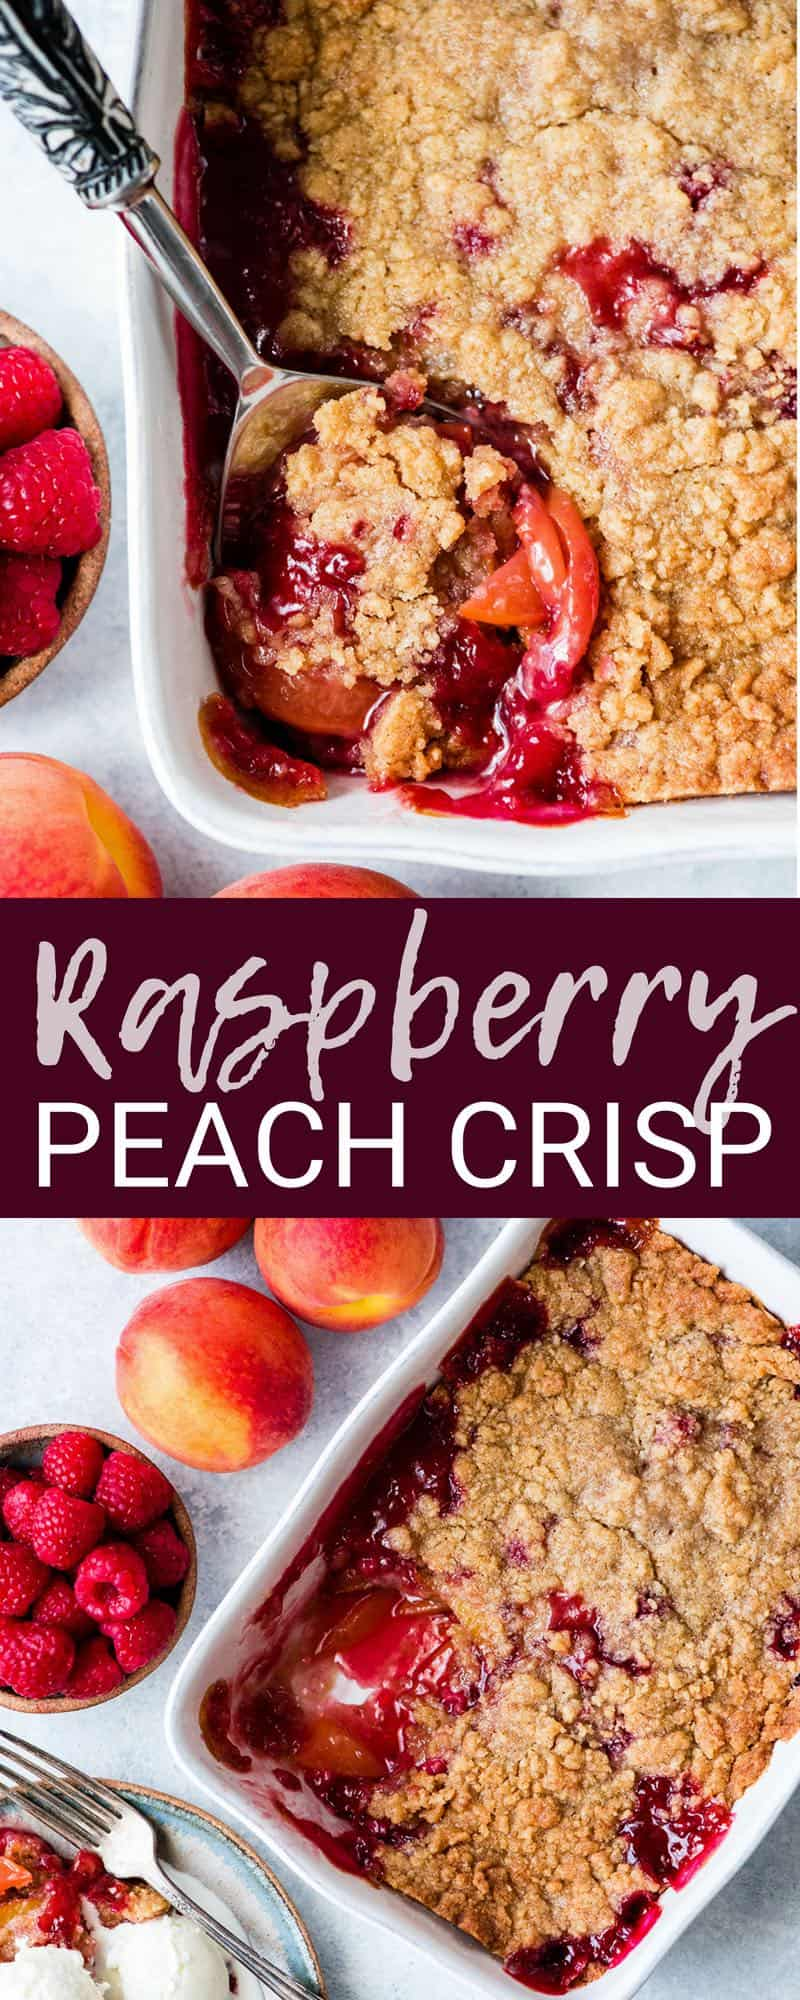 This easy Raspberry Peach Crisp is one of our favorite dessert recipes! The buttery crumb topping paired with the sweet peaches and tart raspberries is absolute summer perfection! It's easily made gluten-free, dairy-free and vegan! #peach #raspberry #crisp #peachcrisp #raspberrycrisp #dessert #summer #berrycrisp #glutenfree #dairyfree #vegan